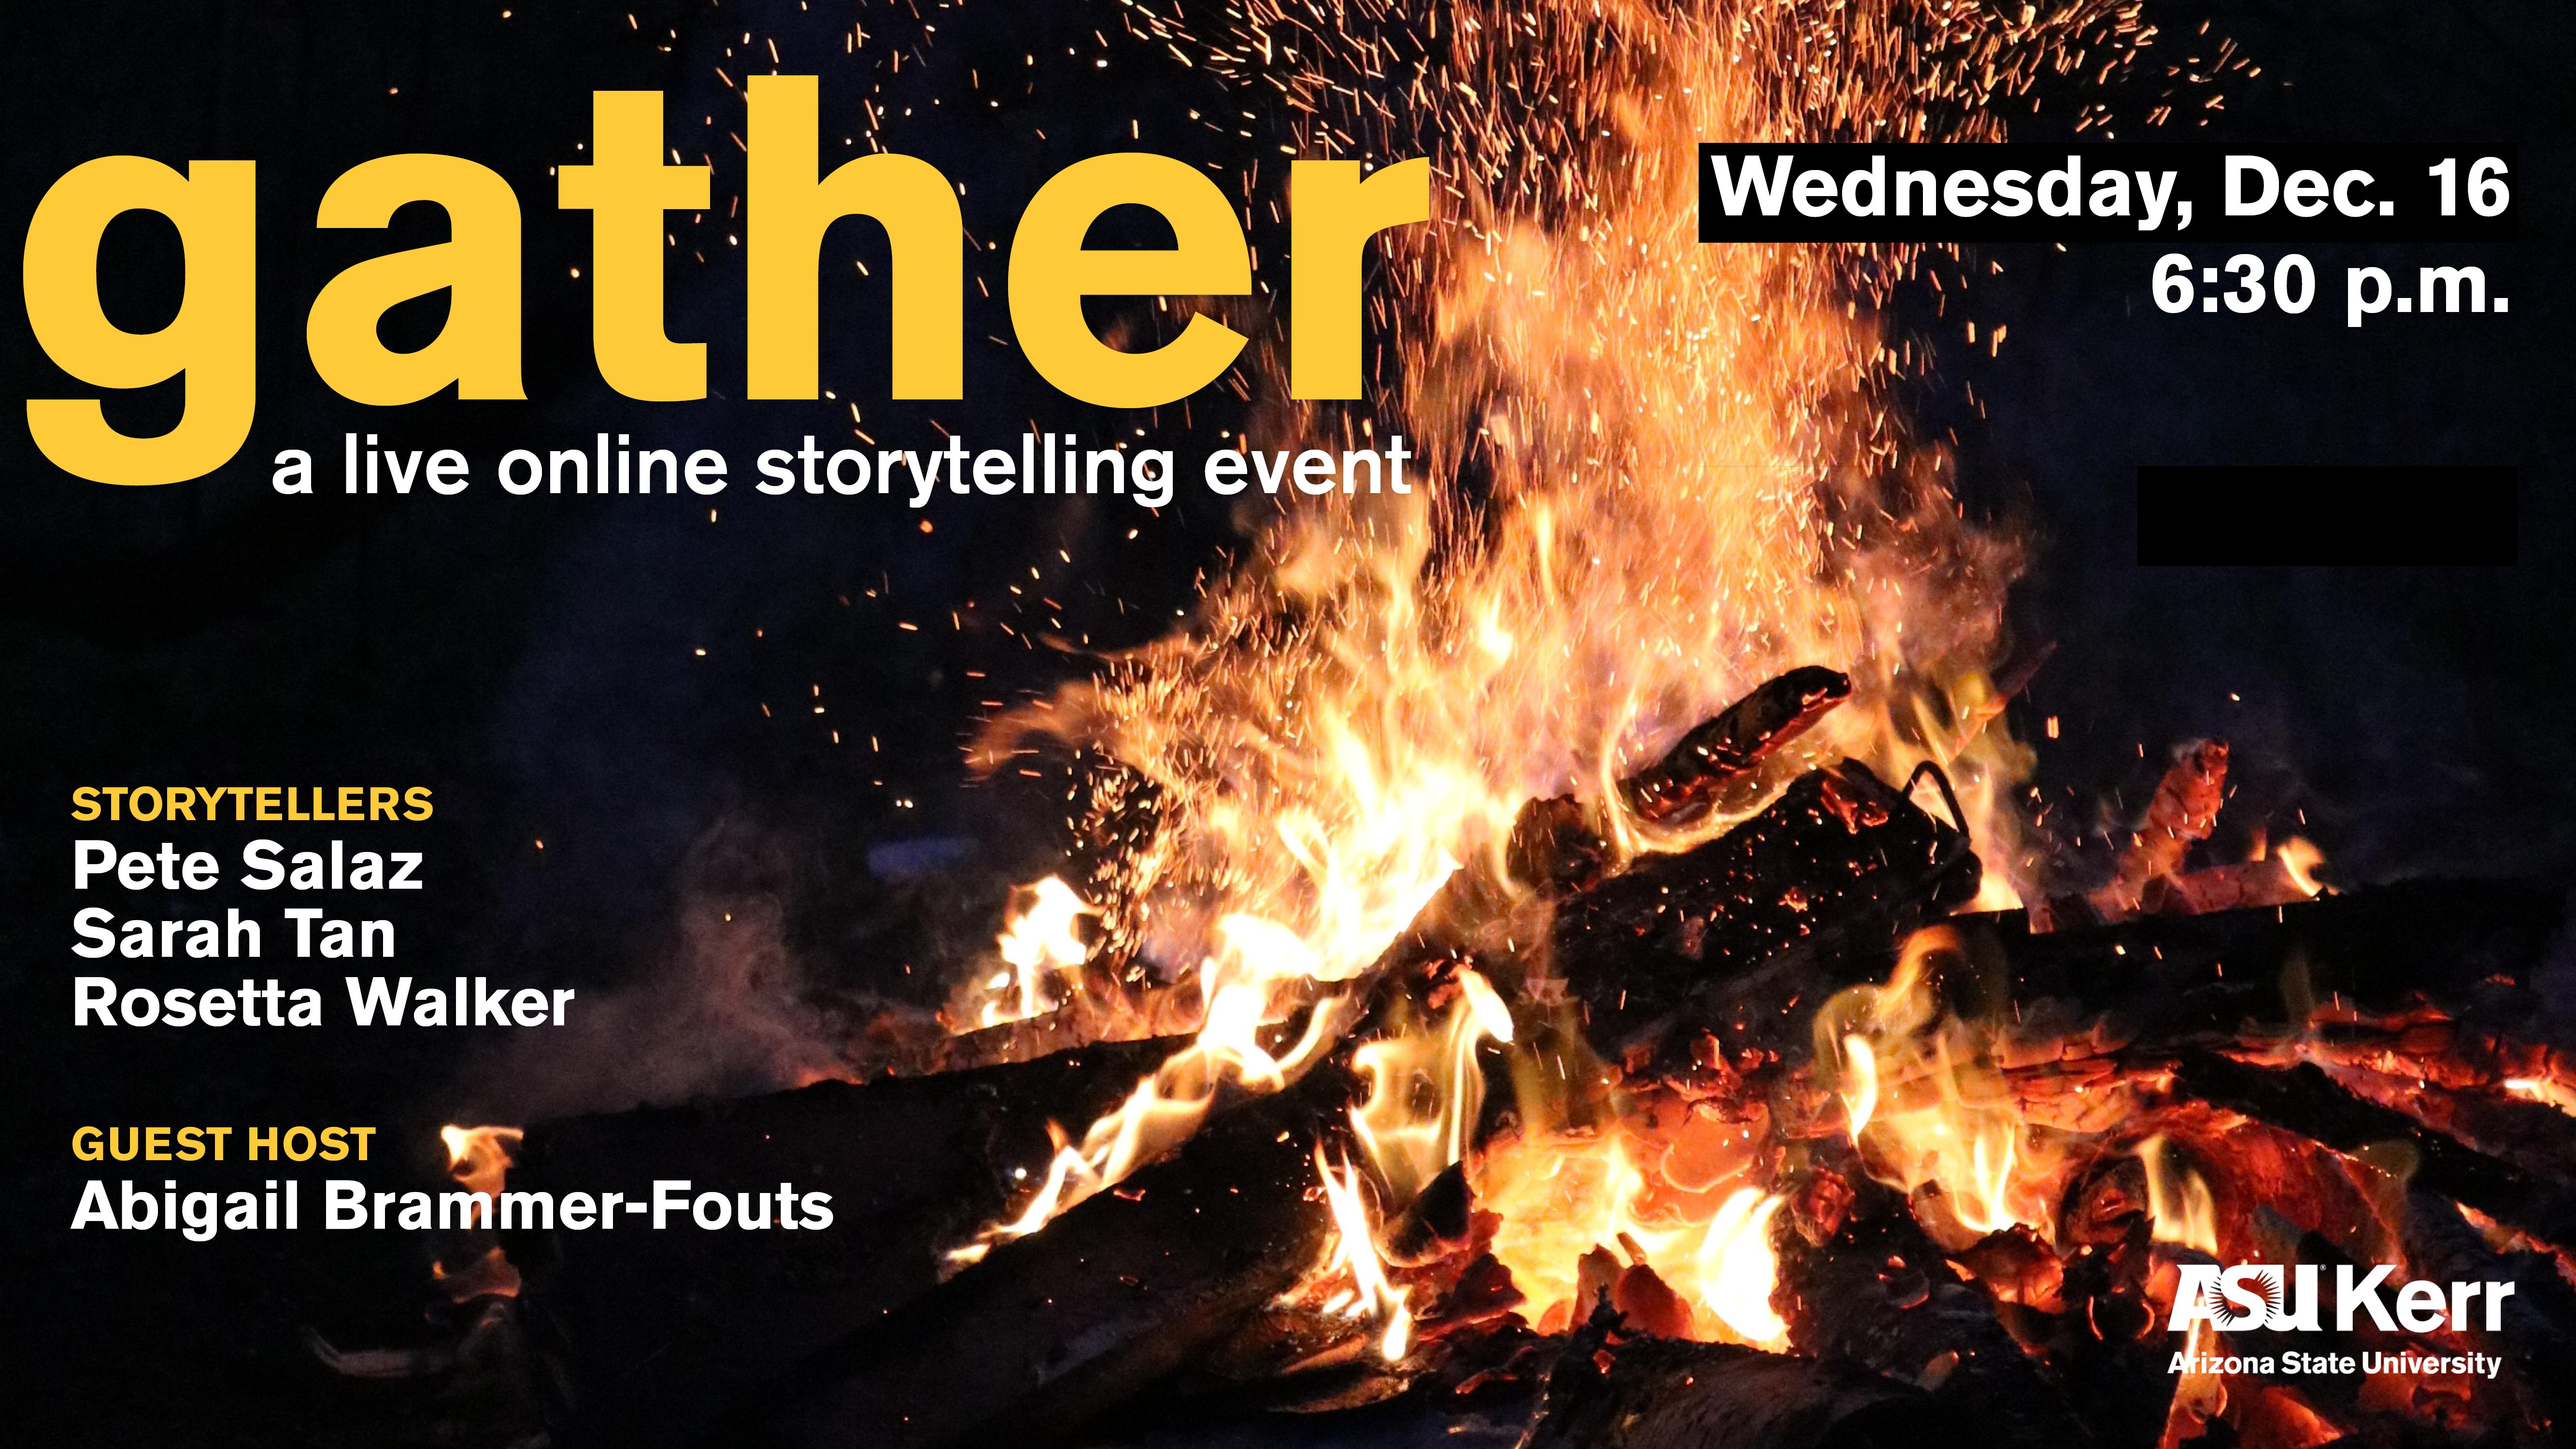 Crackling fire with gather storytellers' and host's names